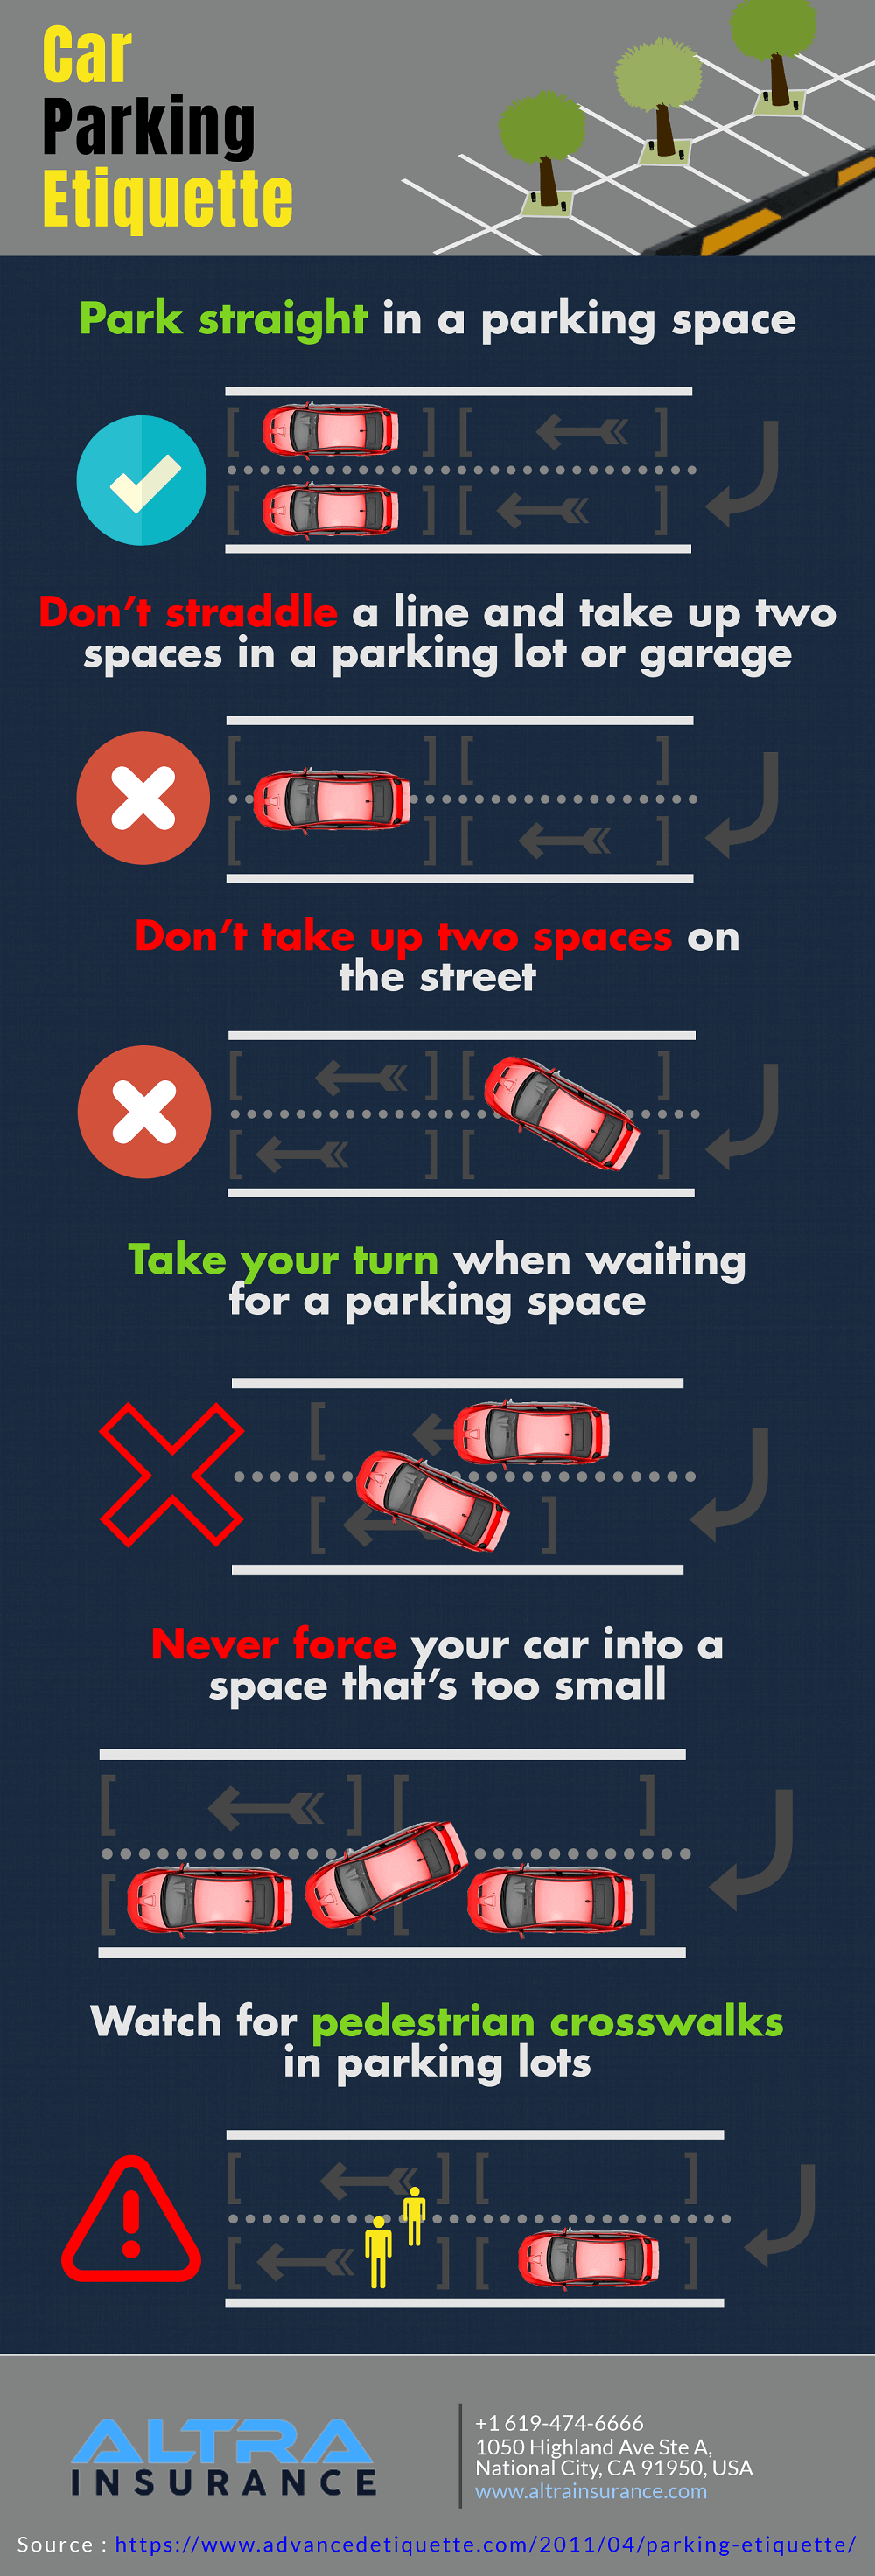 Etiquette for Parking Your Automobile [Infographic]